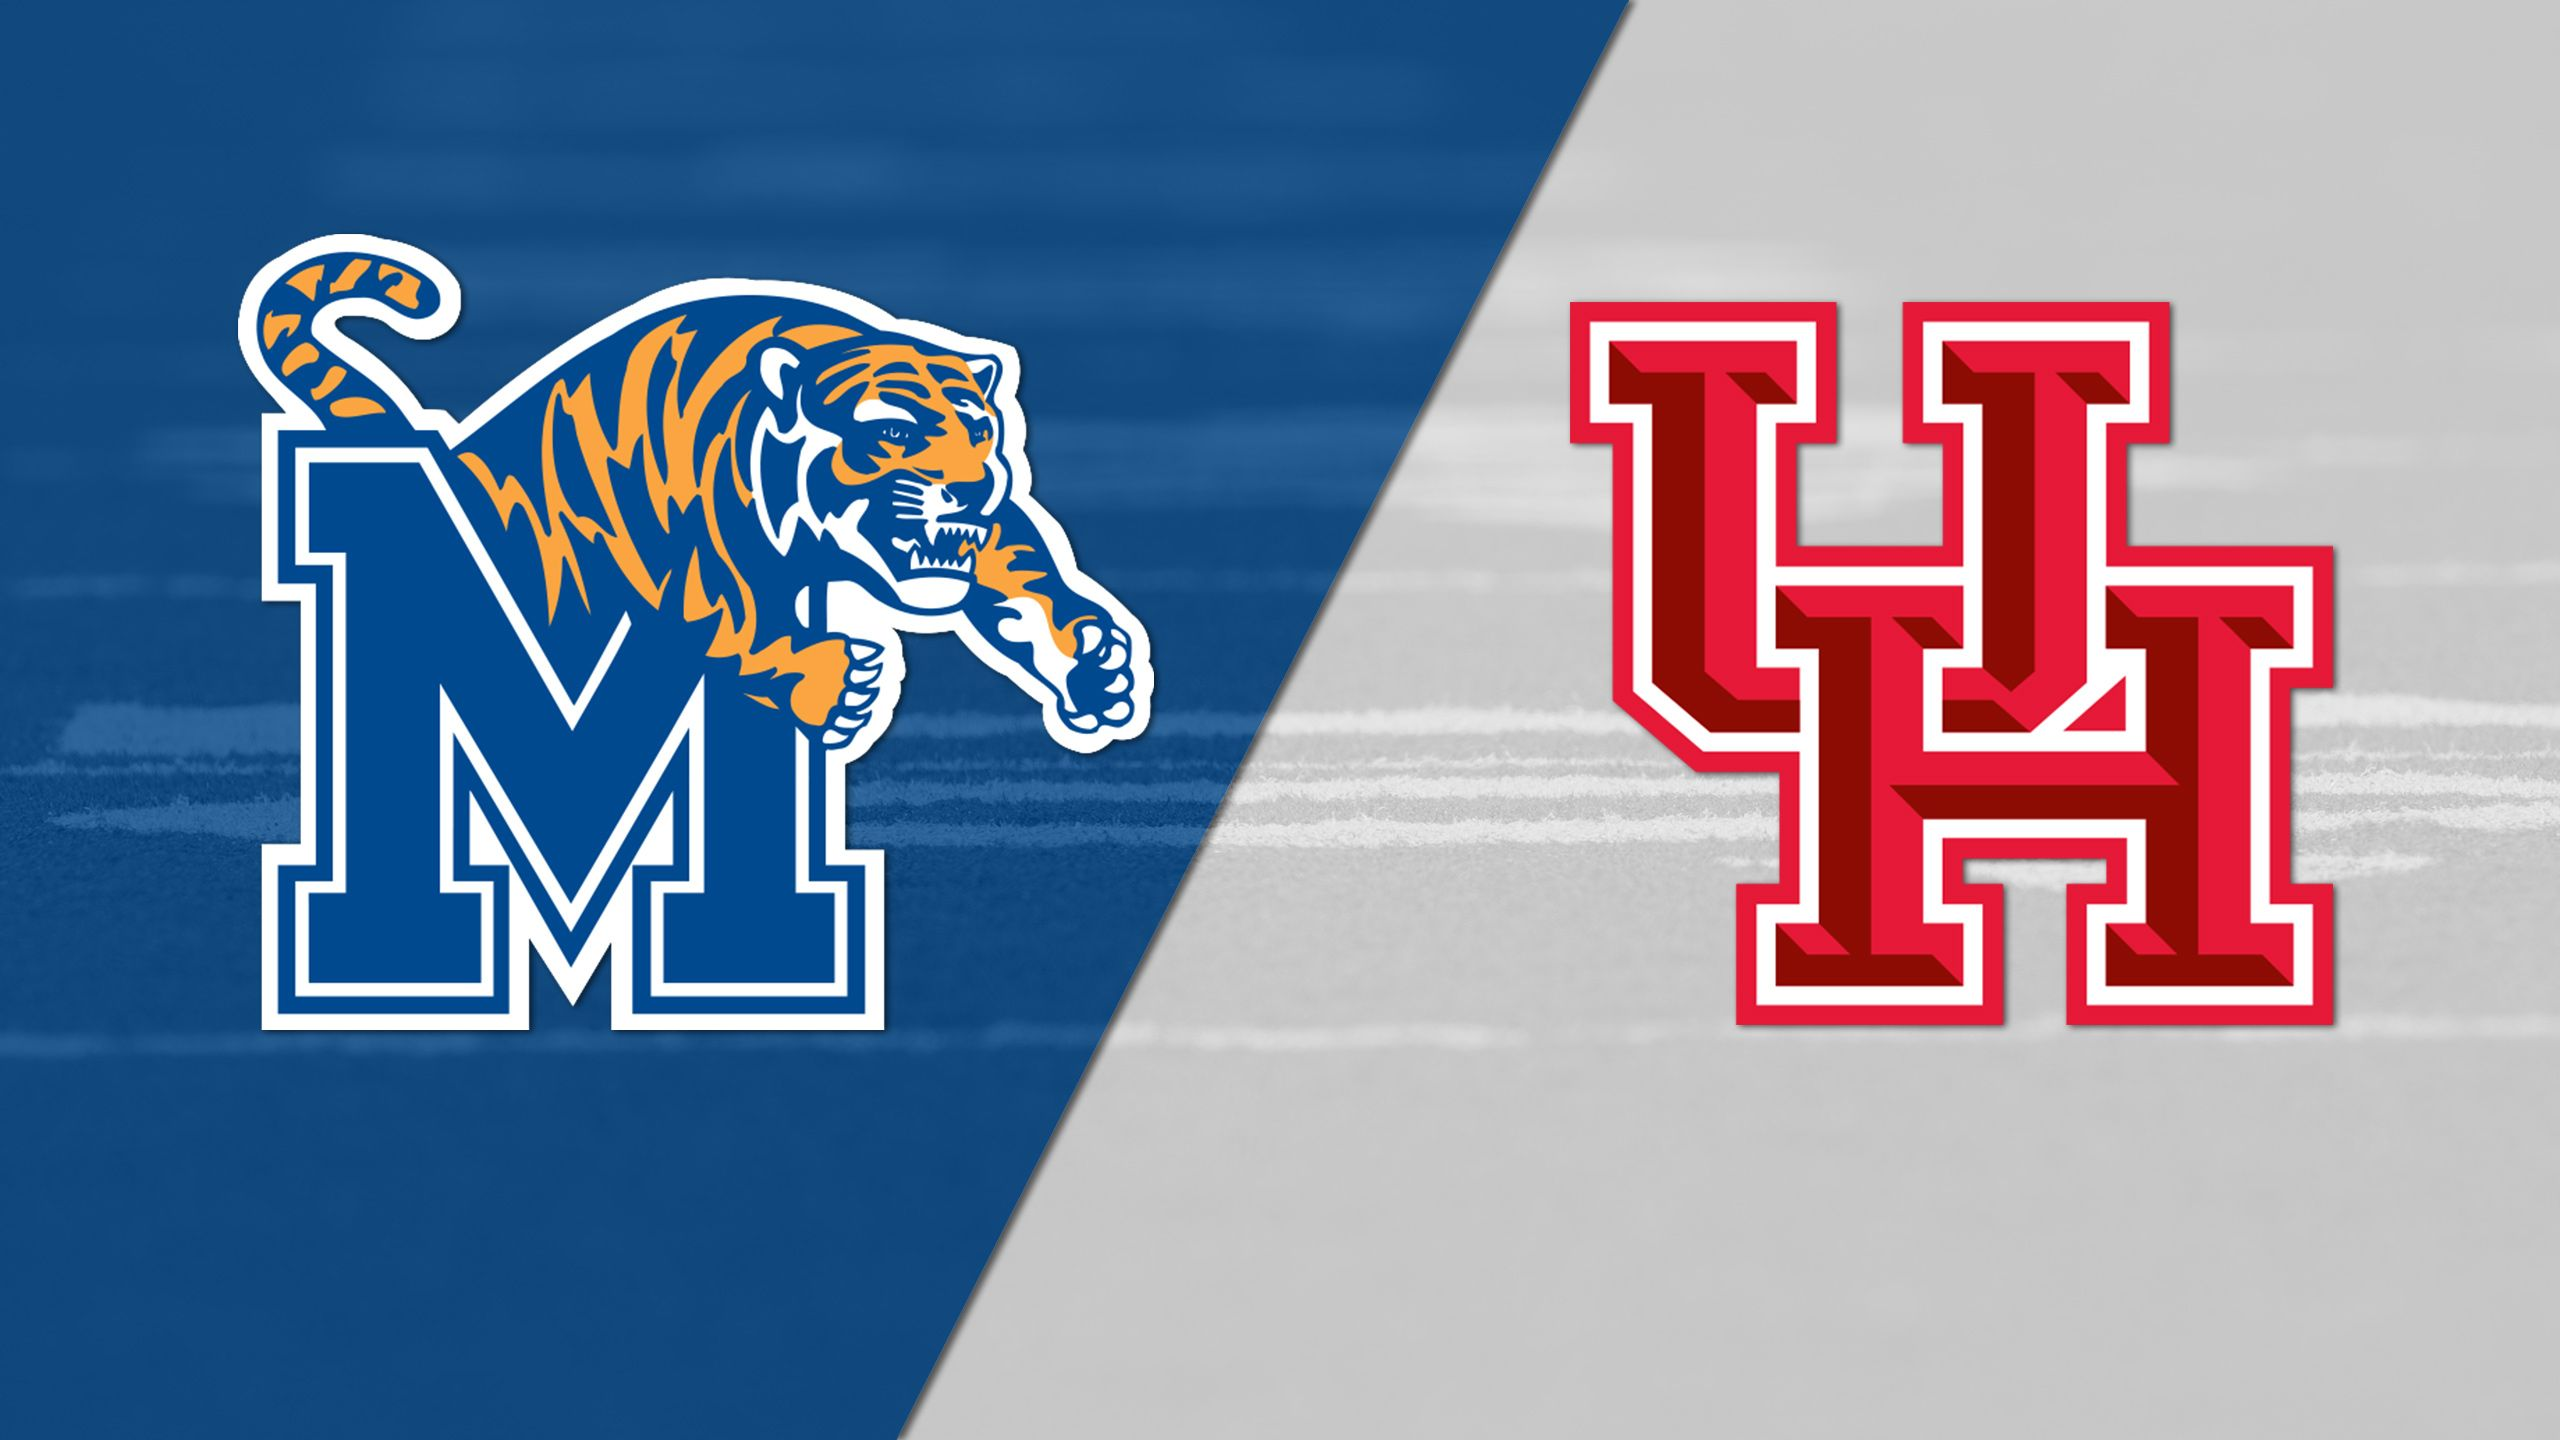 DataCenter - #25 Memphis vs. Houston (Football)